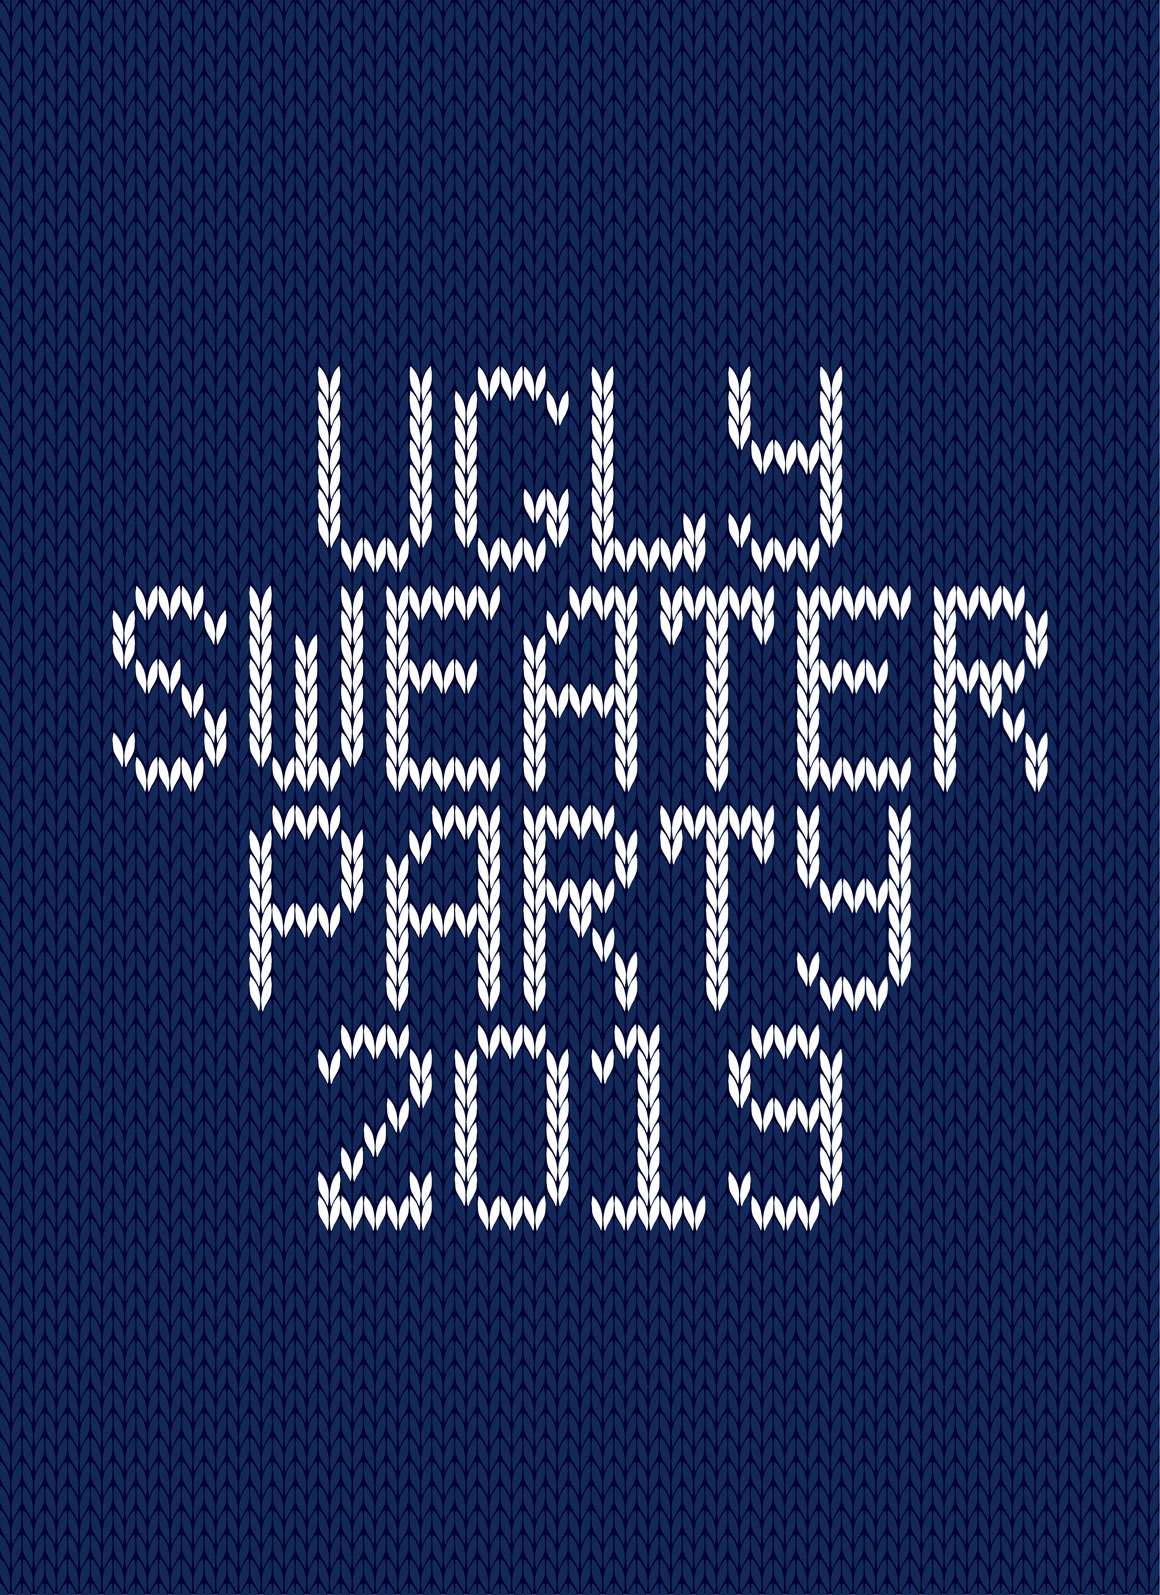 Christmas Knitted Font Ol Version 2.0 example image 8